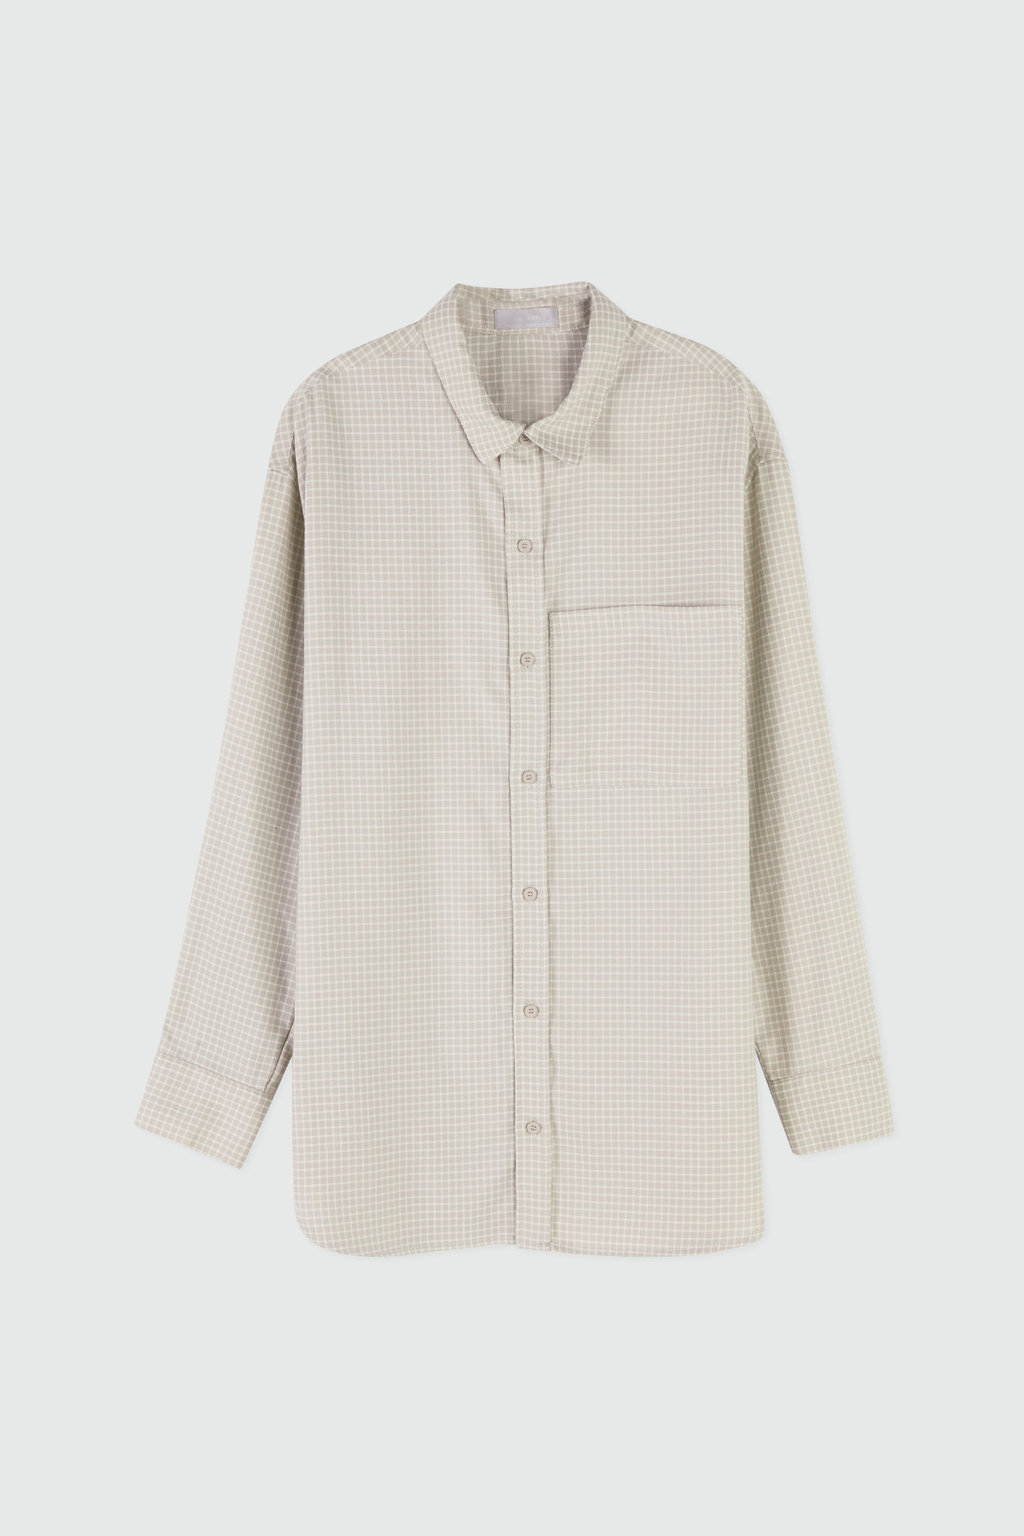 Shirt 3374 Beige Check 5